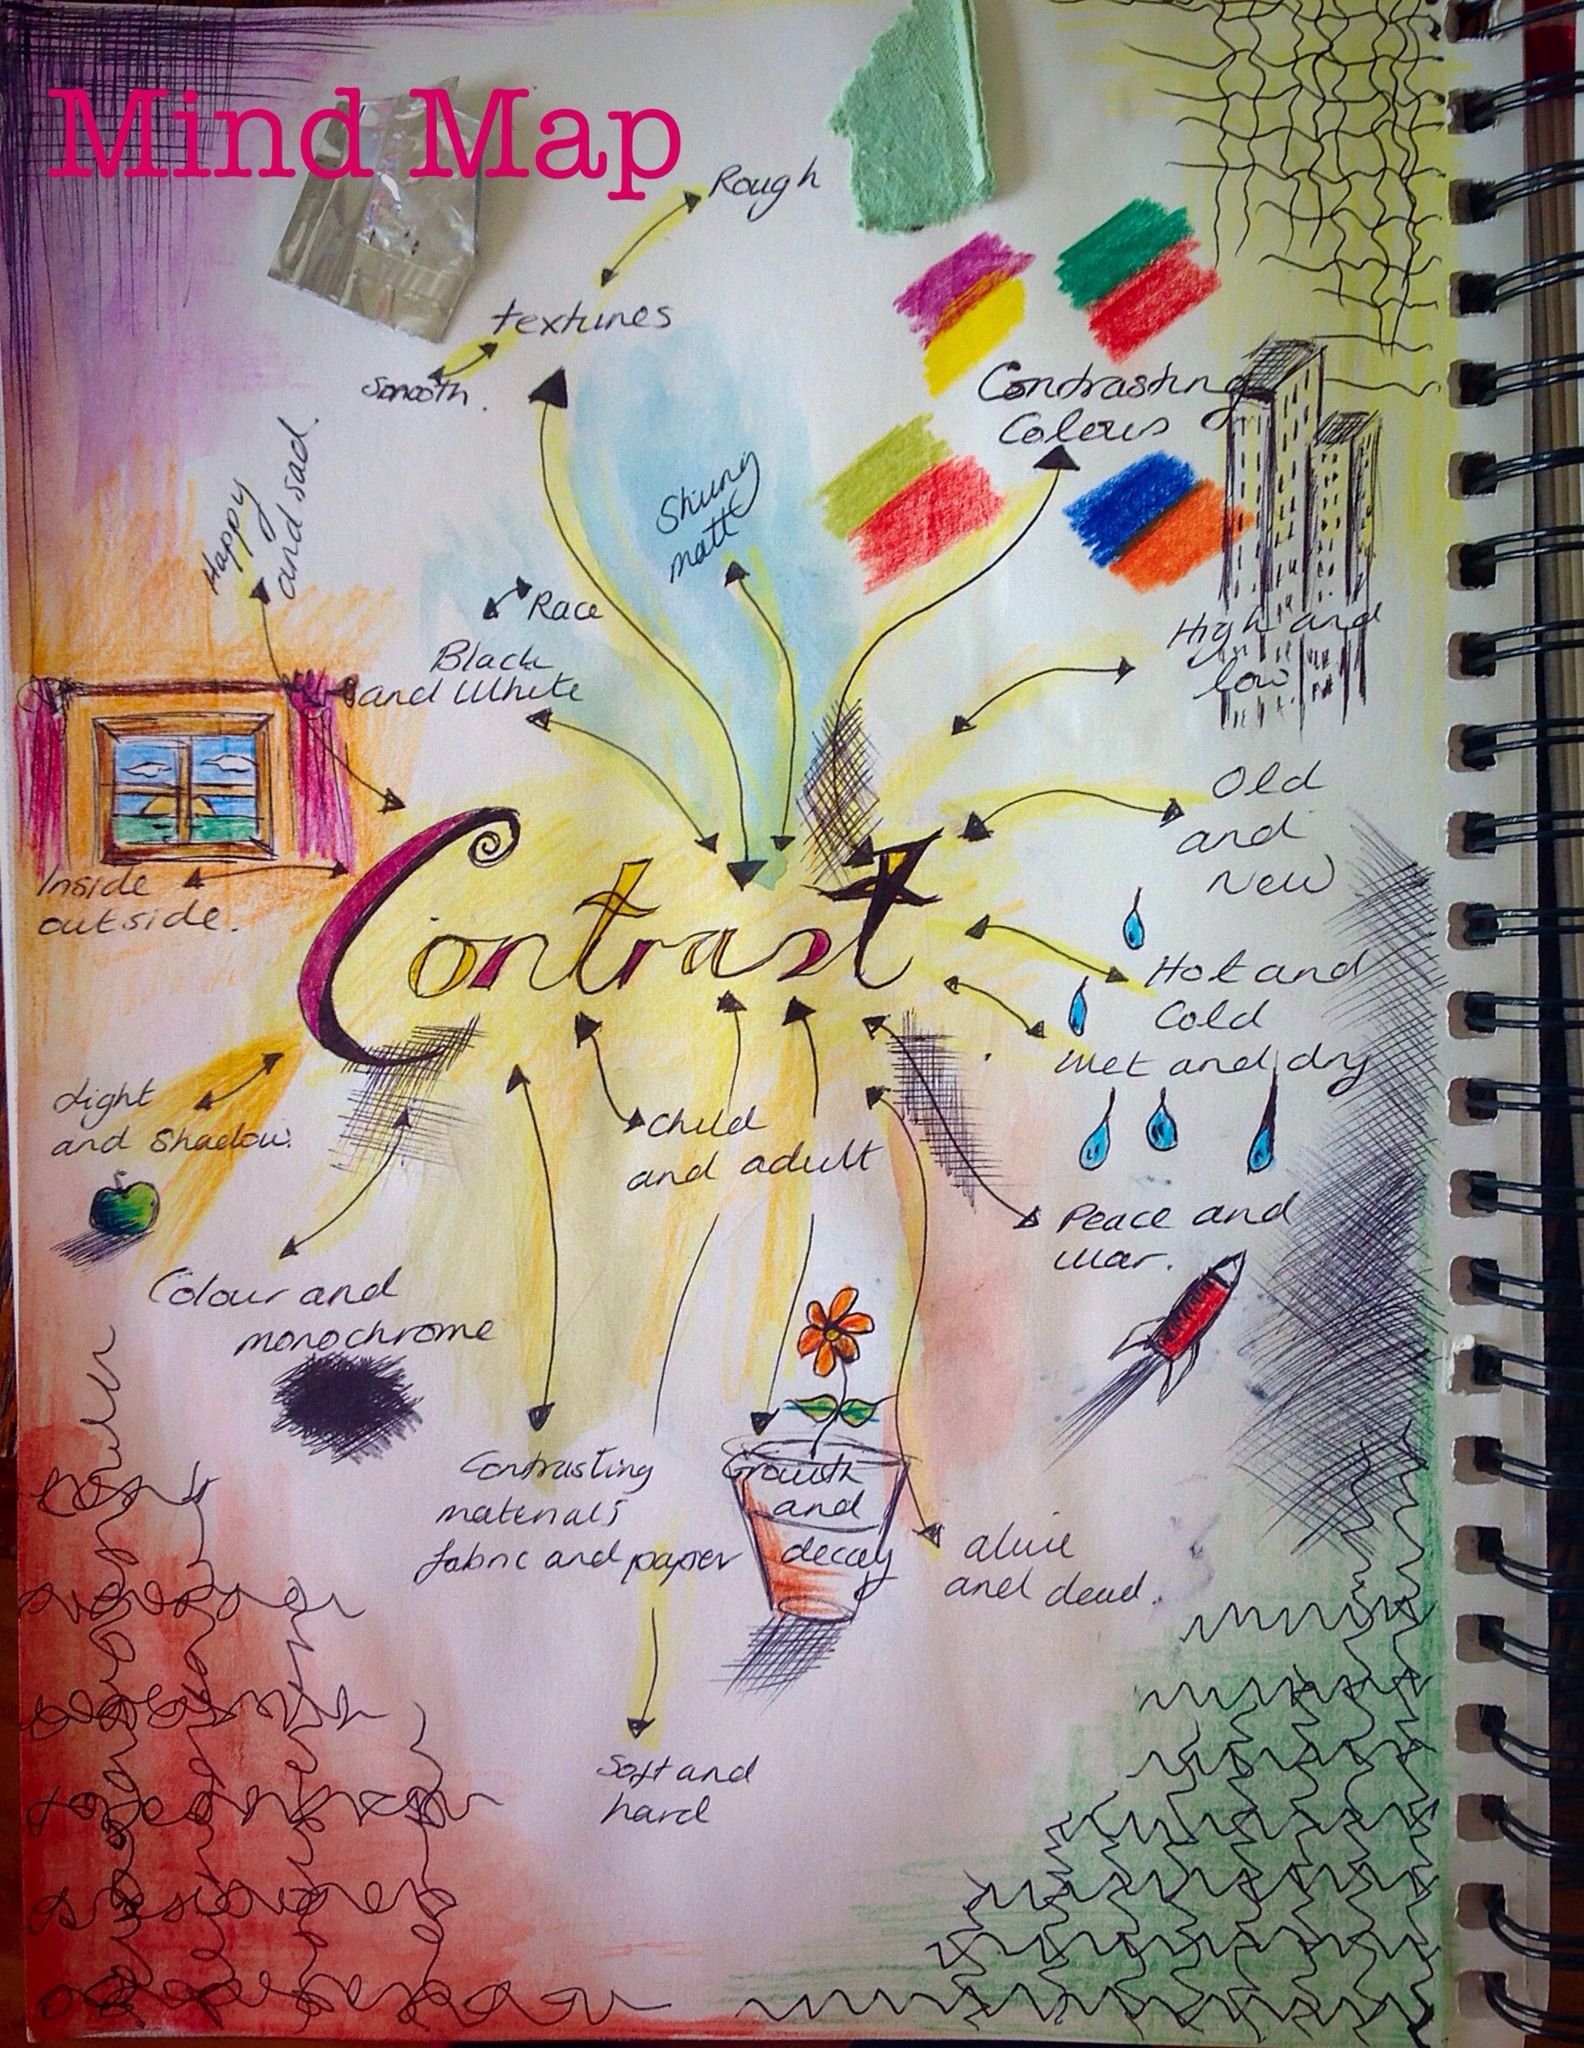 Exploring The Theme Contrast With A Mind Map A02 A03 Mind Map Art Contrast Art Sketch Book